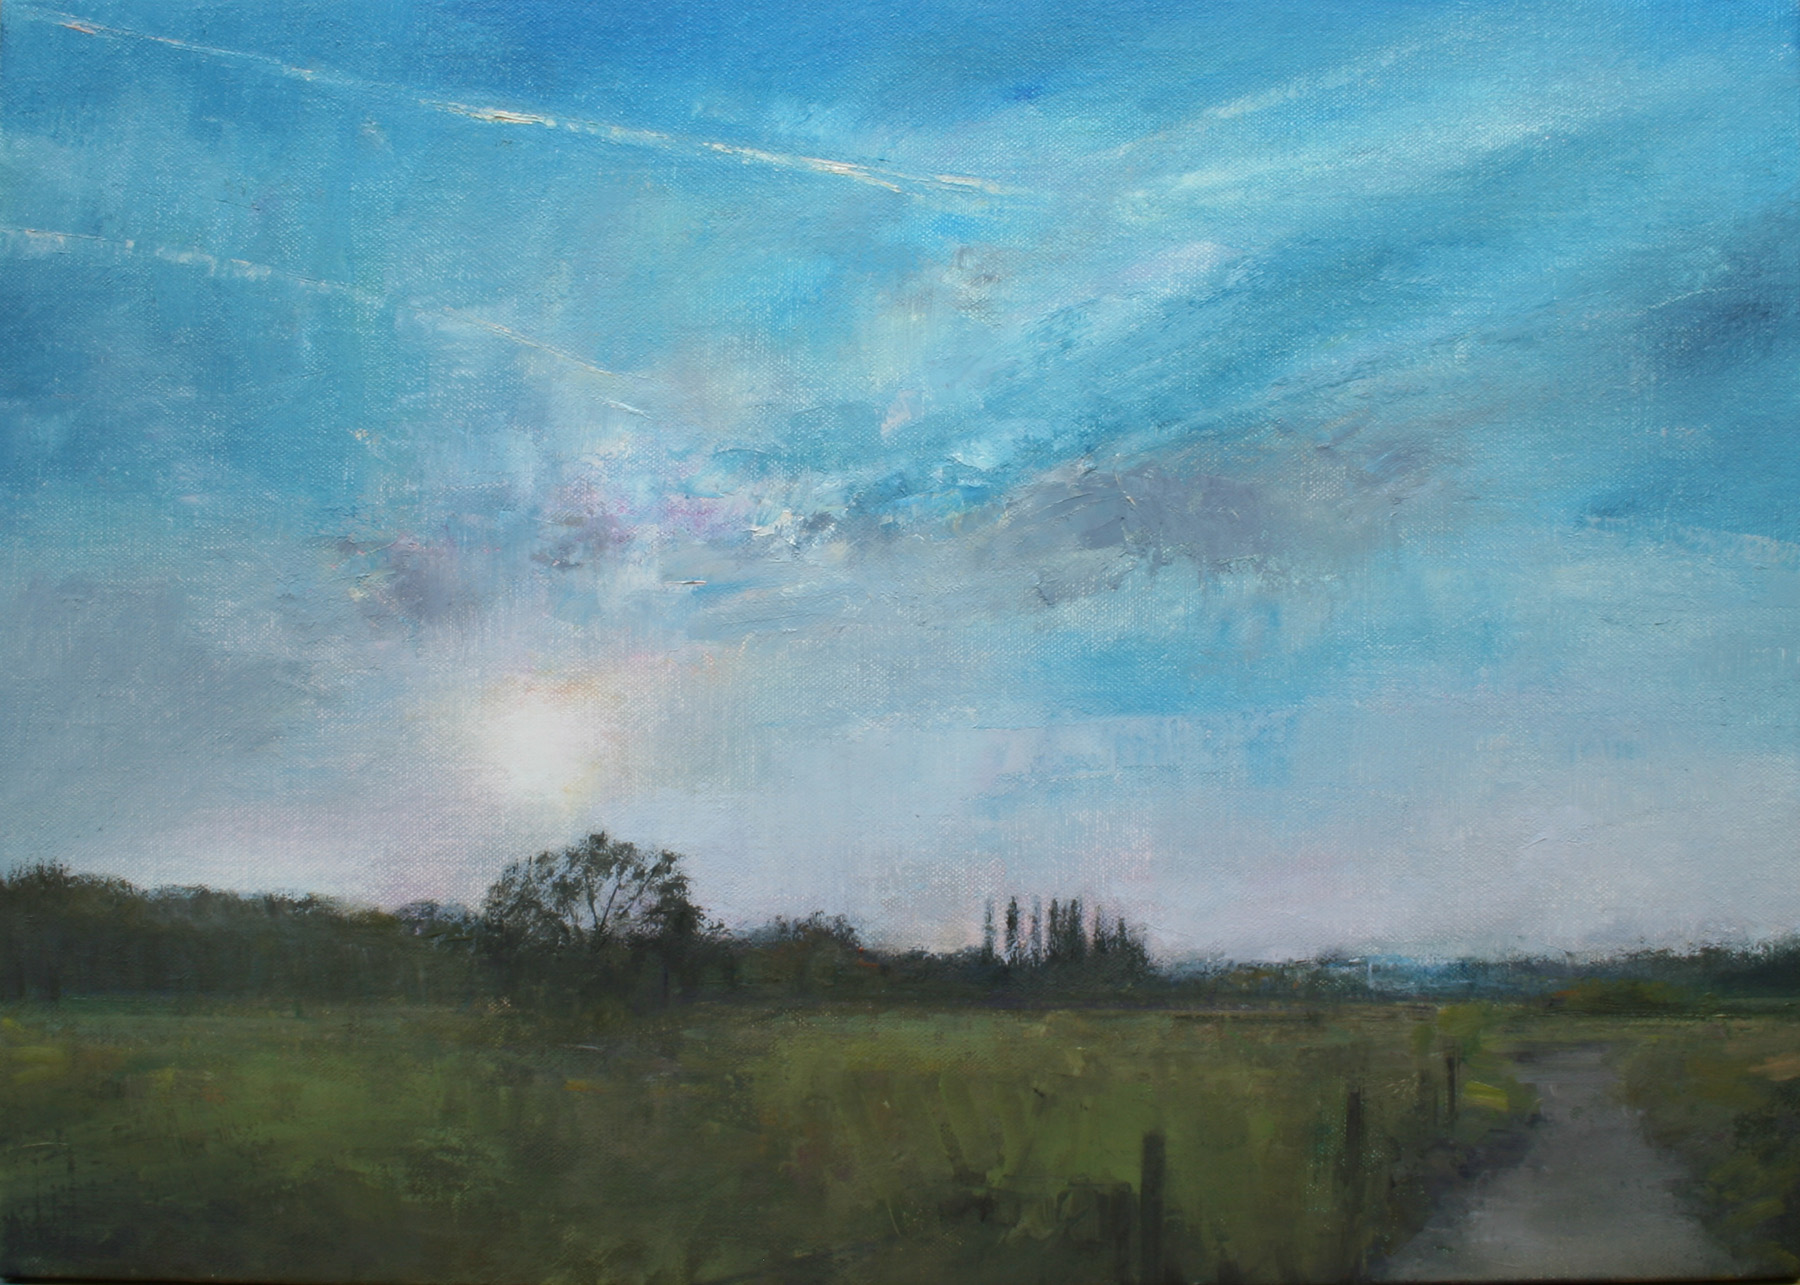 "Edgelands - Cotmanhay, Nottinghamshire Derbyshire border Oil on Canvas, 14 x 10"", £950 - Sold"